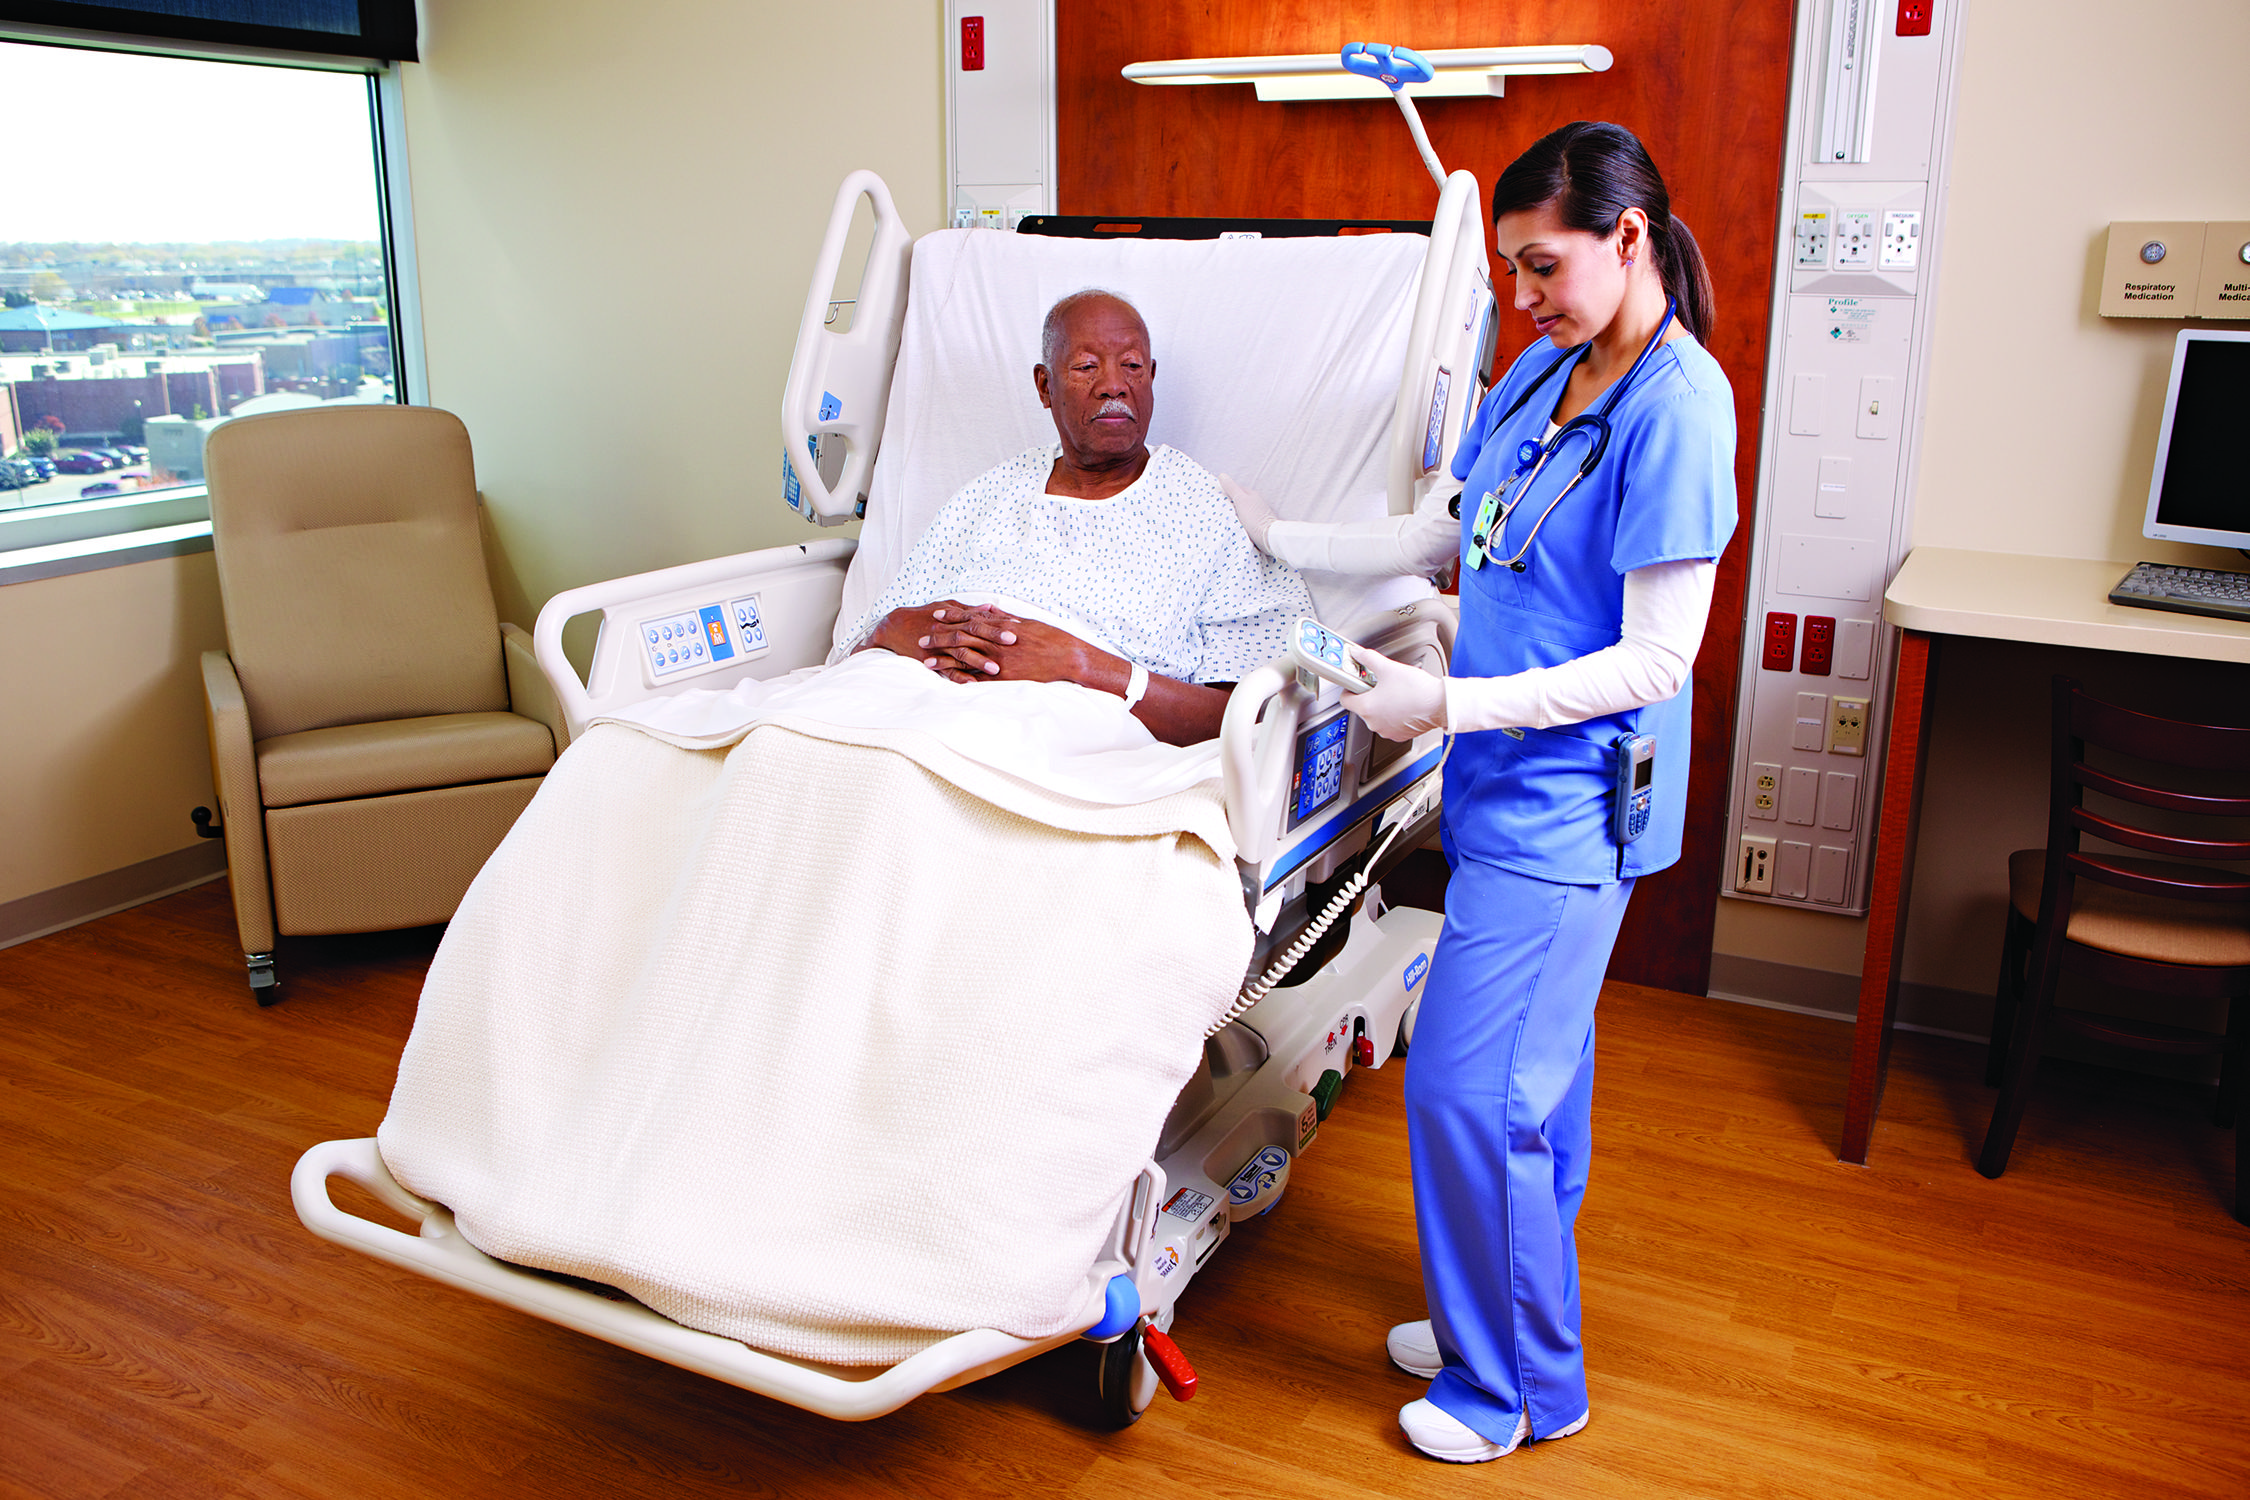 Hill Rom Advance Bed Bed, Hospital bed, Outdoor bed